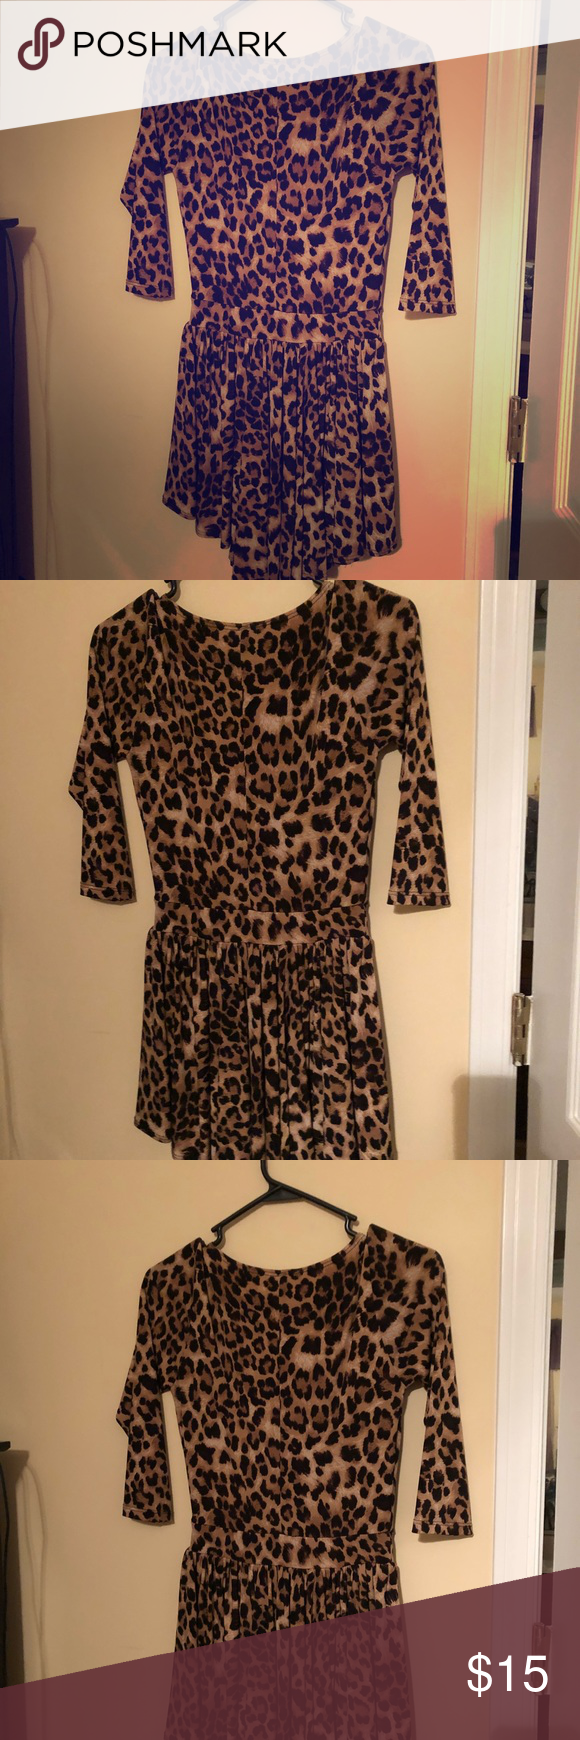 Cheetah Print Dress Long Sleeve Animal Print Dress It Is Stretchy And Easy To Move In I Only Wo Cheetah Print Dress Animal Print Dresses Printed Long Dresses [ 1740 x 580 Pixel ]